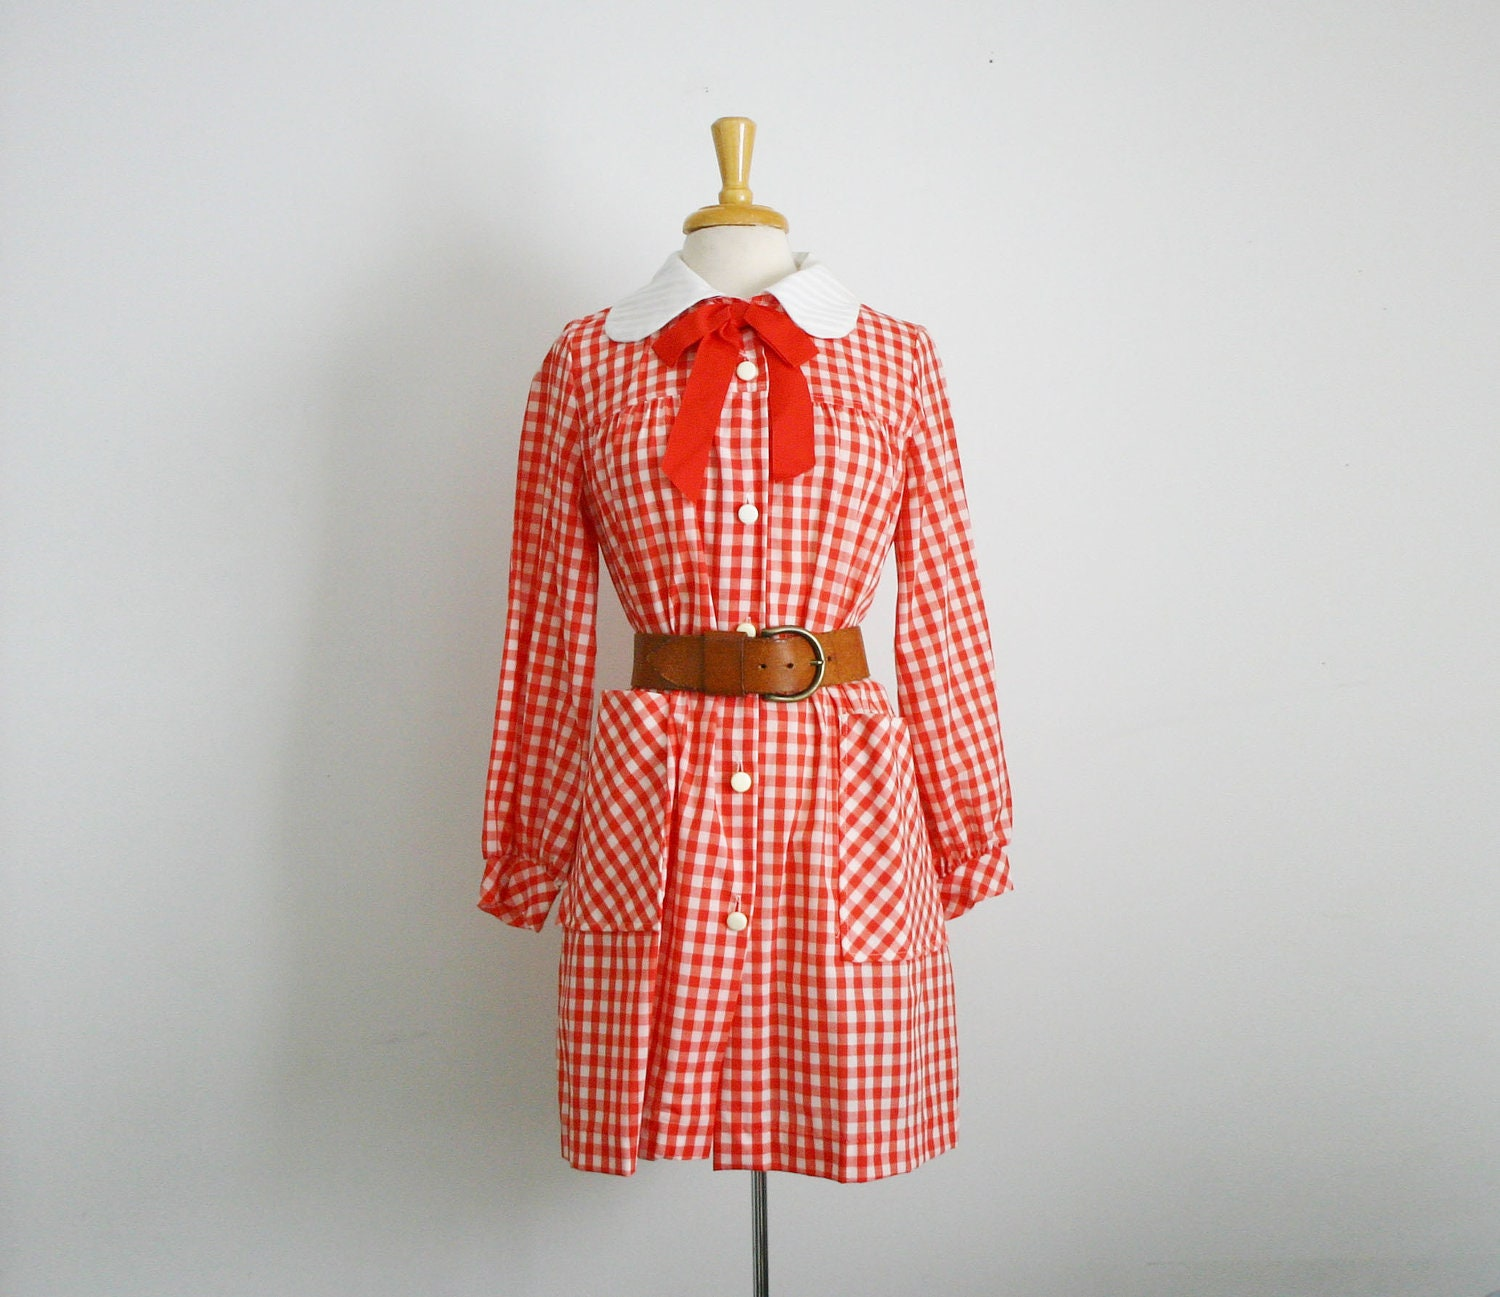 1960s peter pan collar yoke front midi babydoll dress in red and white gingham , size large - TheArborVitae